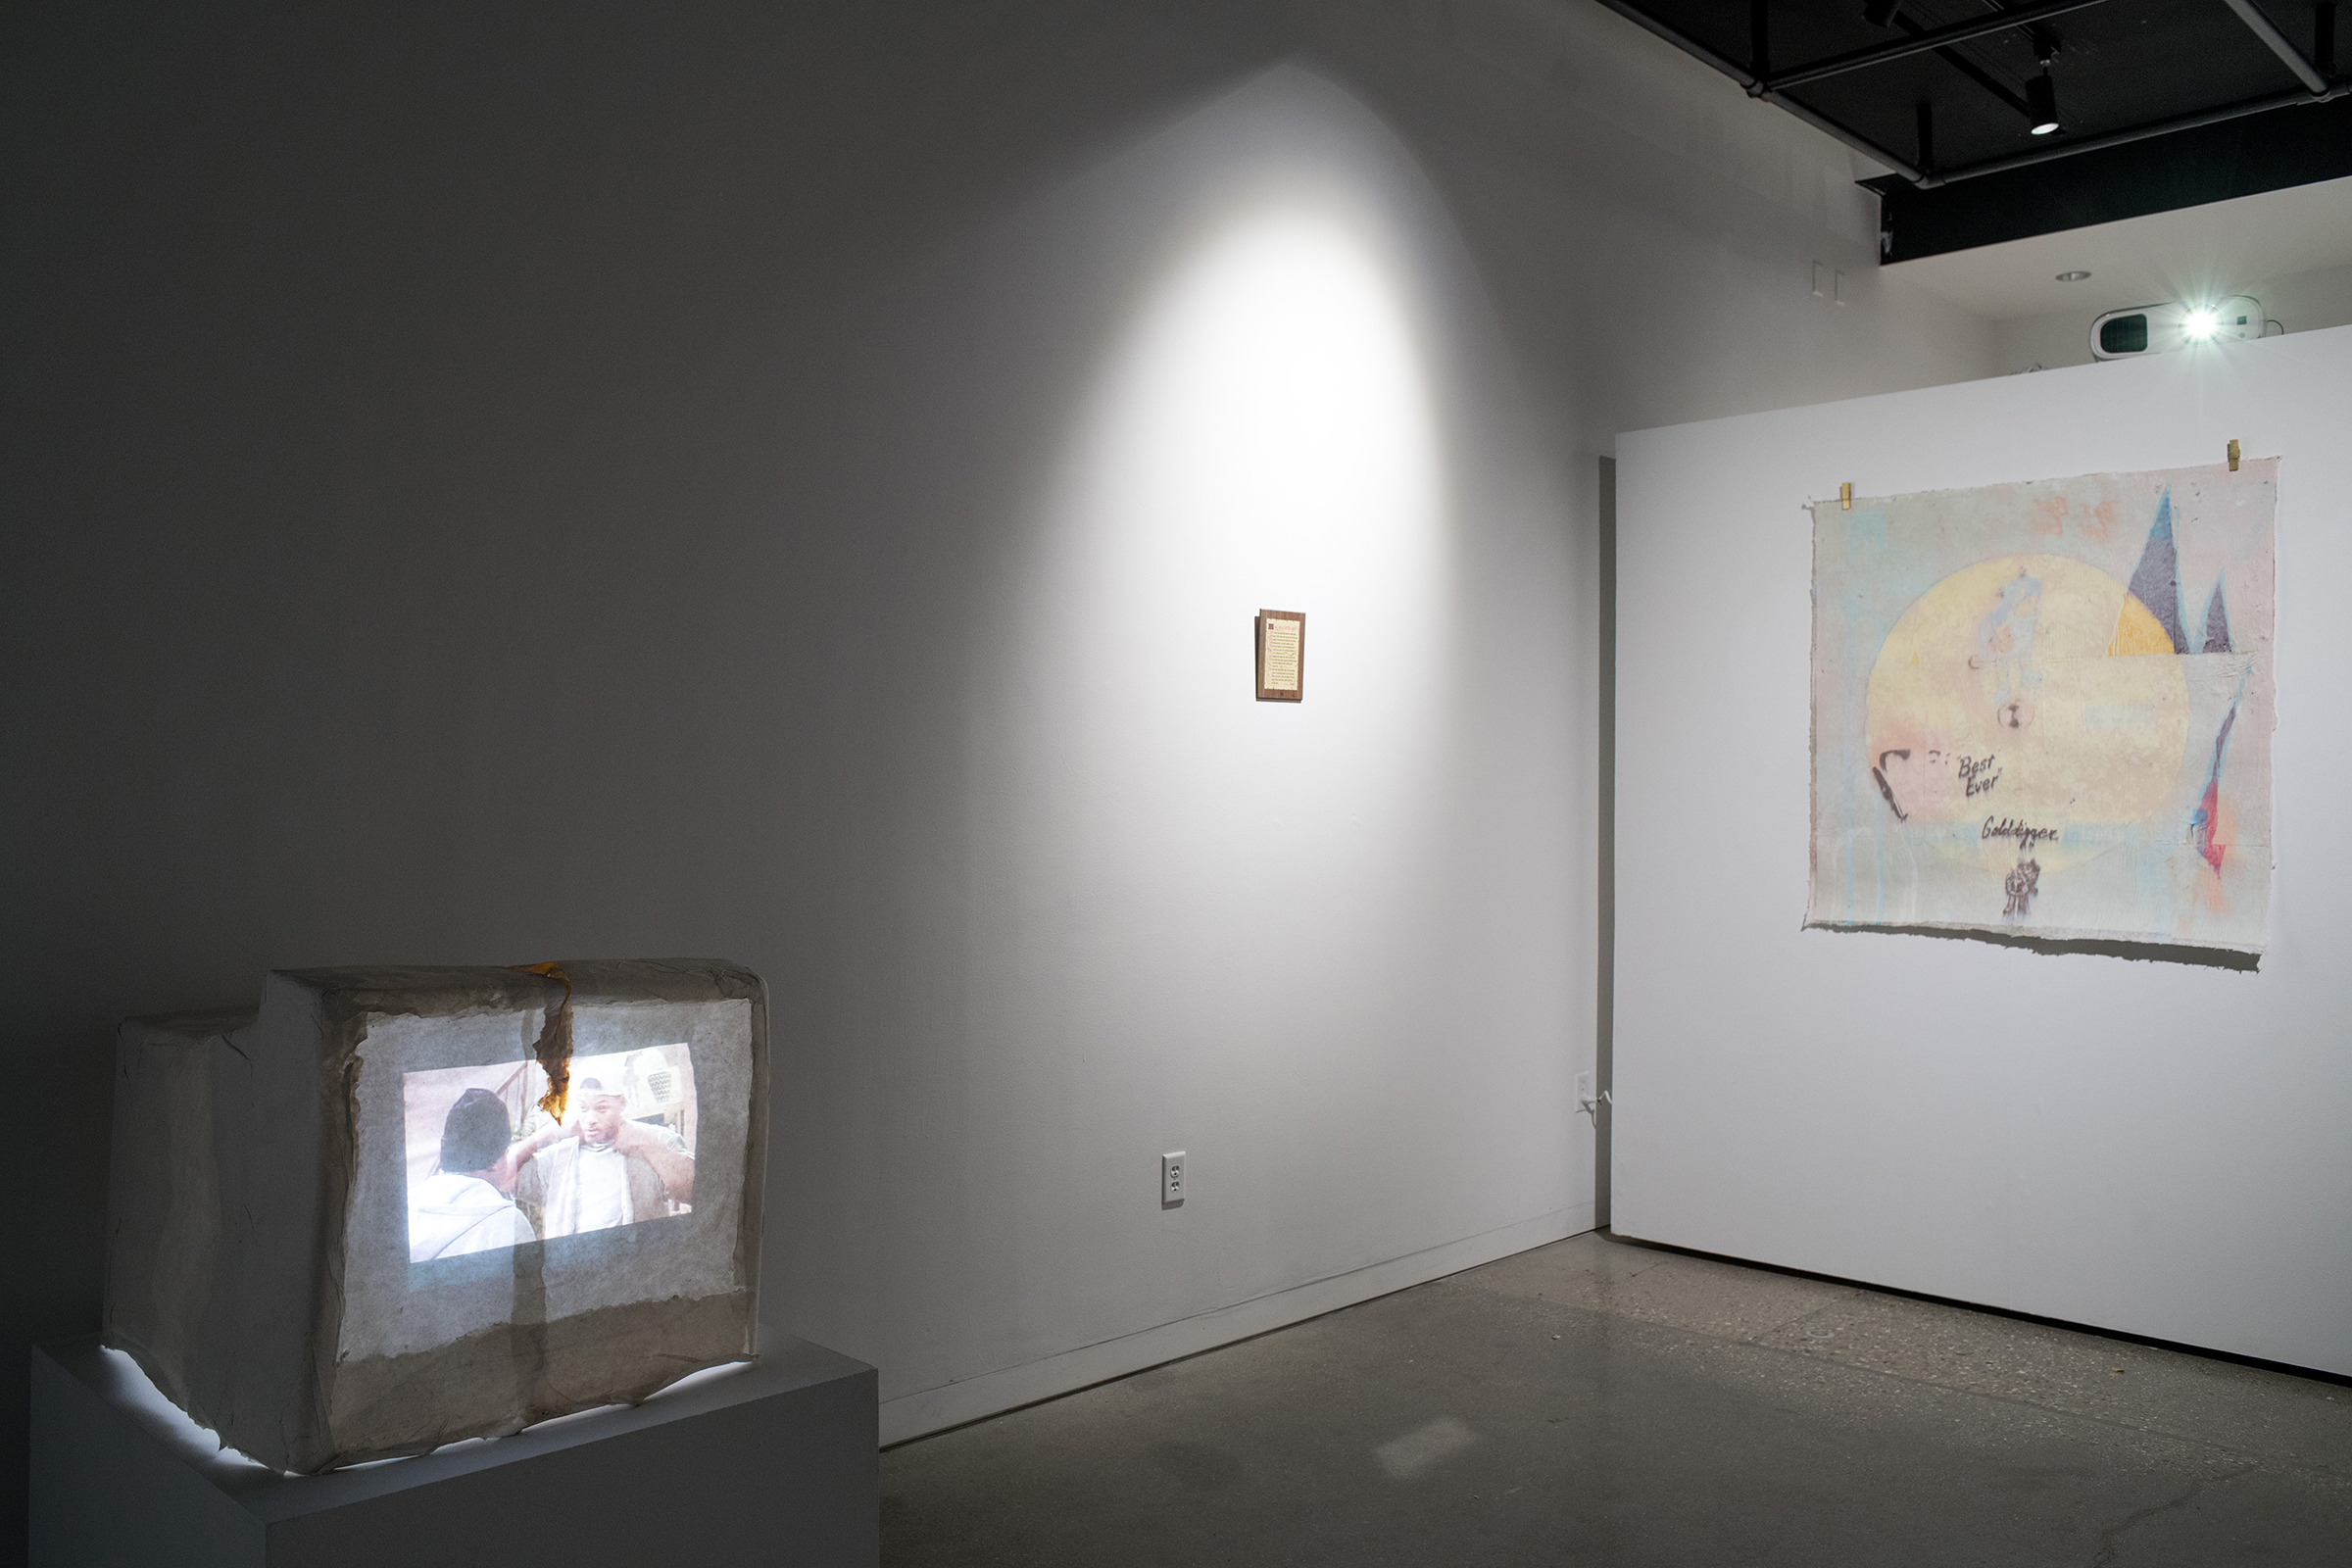 Installation view of Familiar Words Between Good and Bad Master of Fine Arts Exhibition by Kayla Story. Photography by Kyle Herrera.